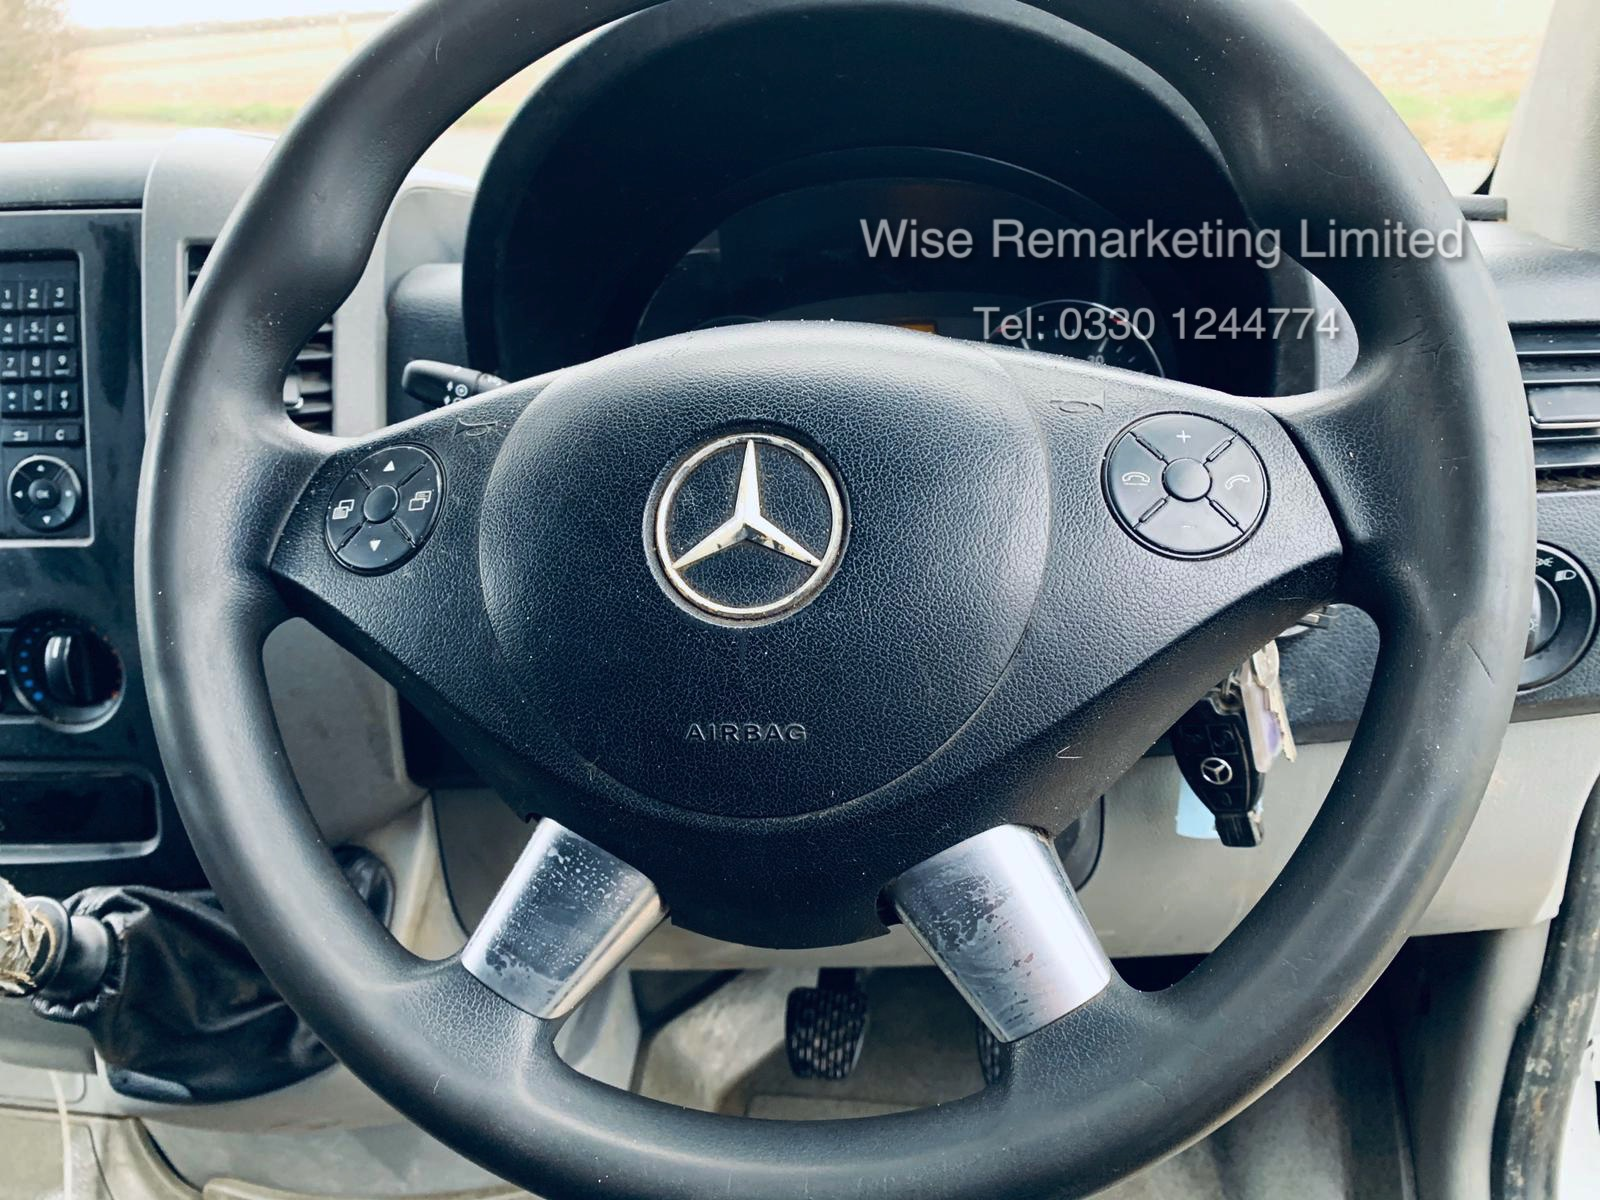 Mercedes Sprinter 313 2.1 CDI - 2014 14 Reg - 6 Speed - Ply Lined - Company Owned - Image 16 of 18